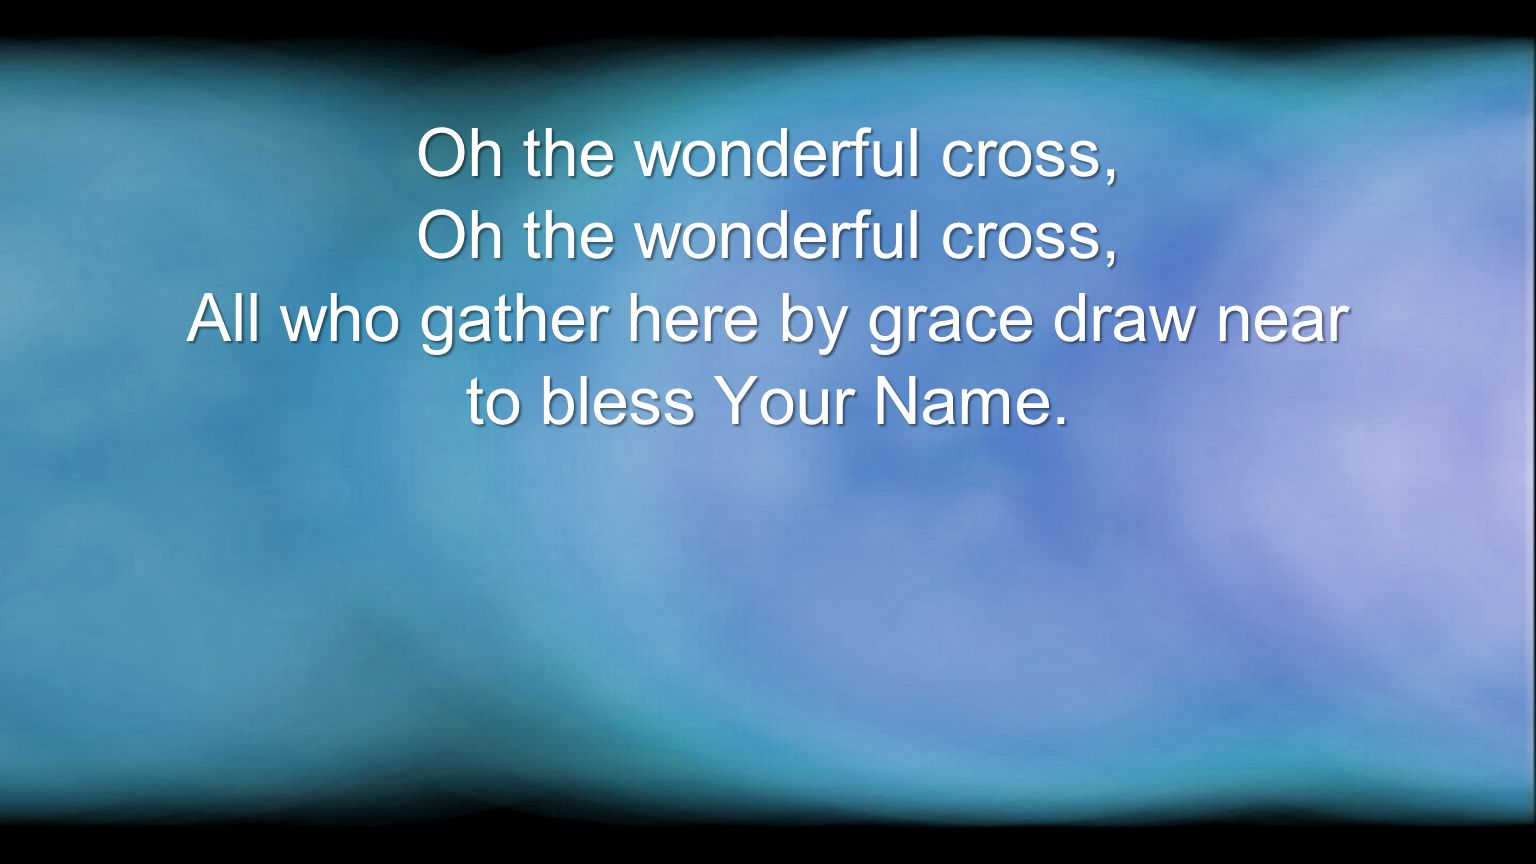 Oh the wonderful cross, All who gather here by grace draw near to bless Your Name.